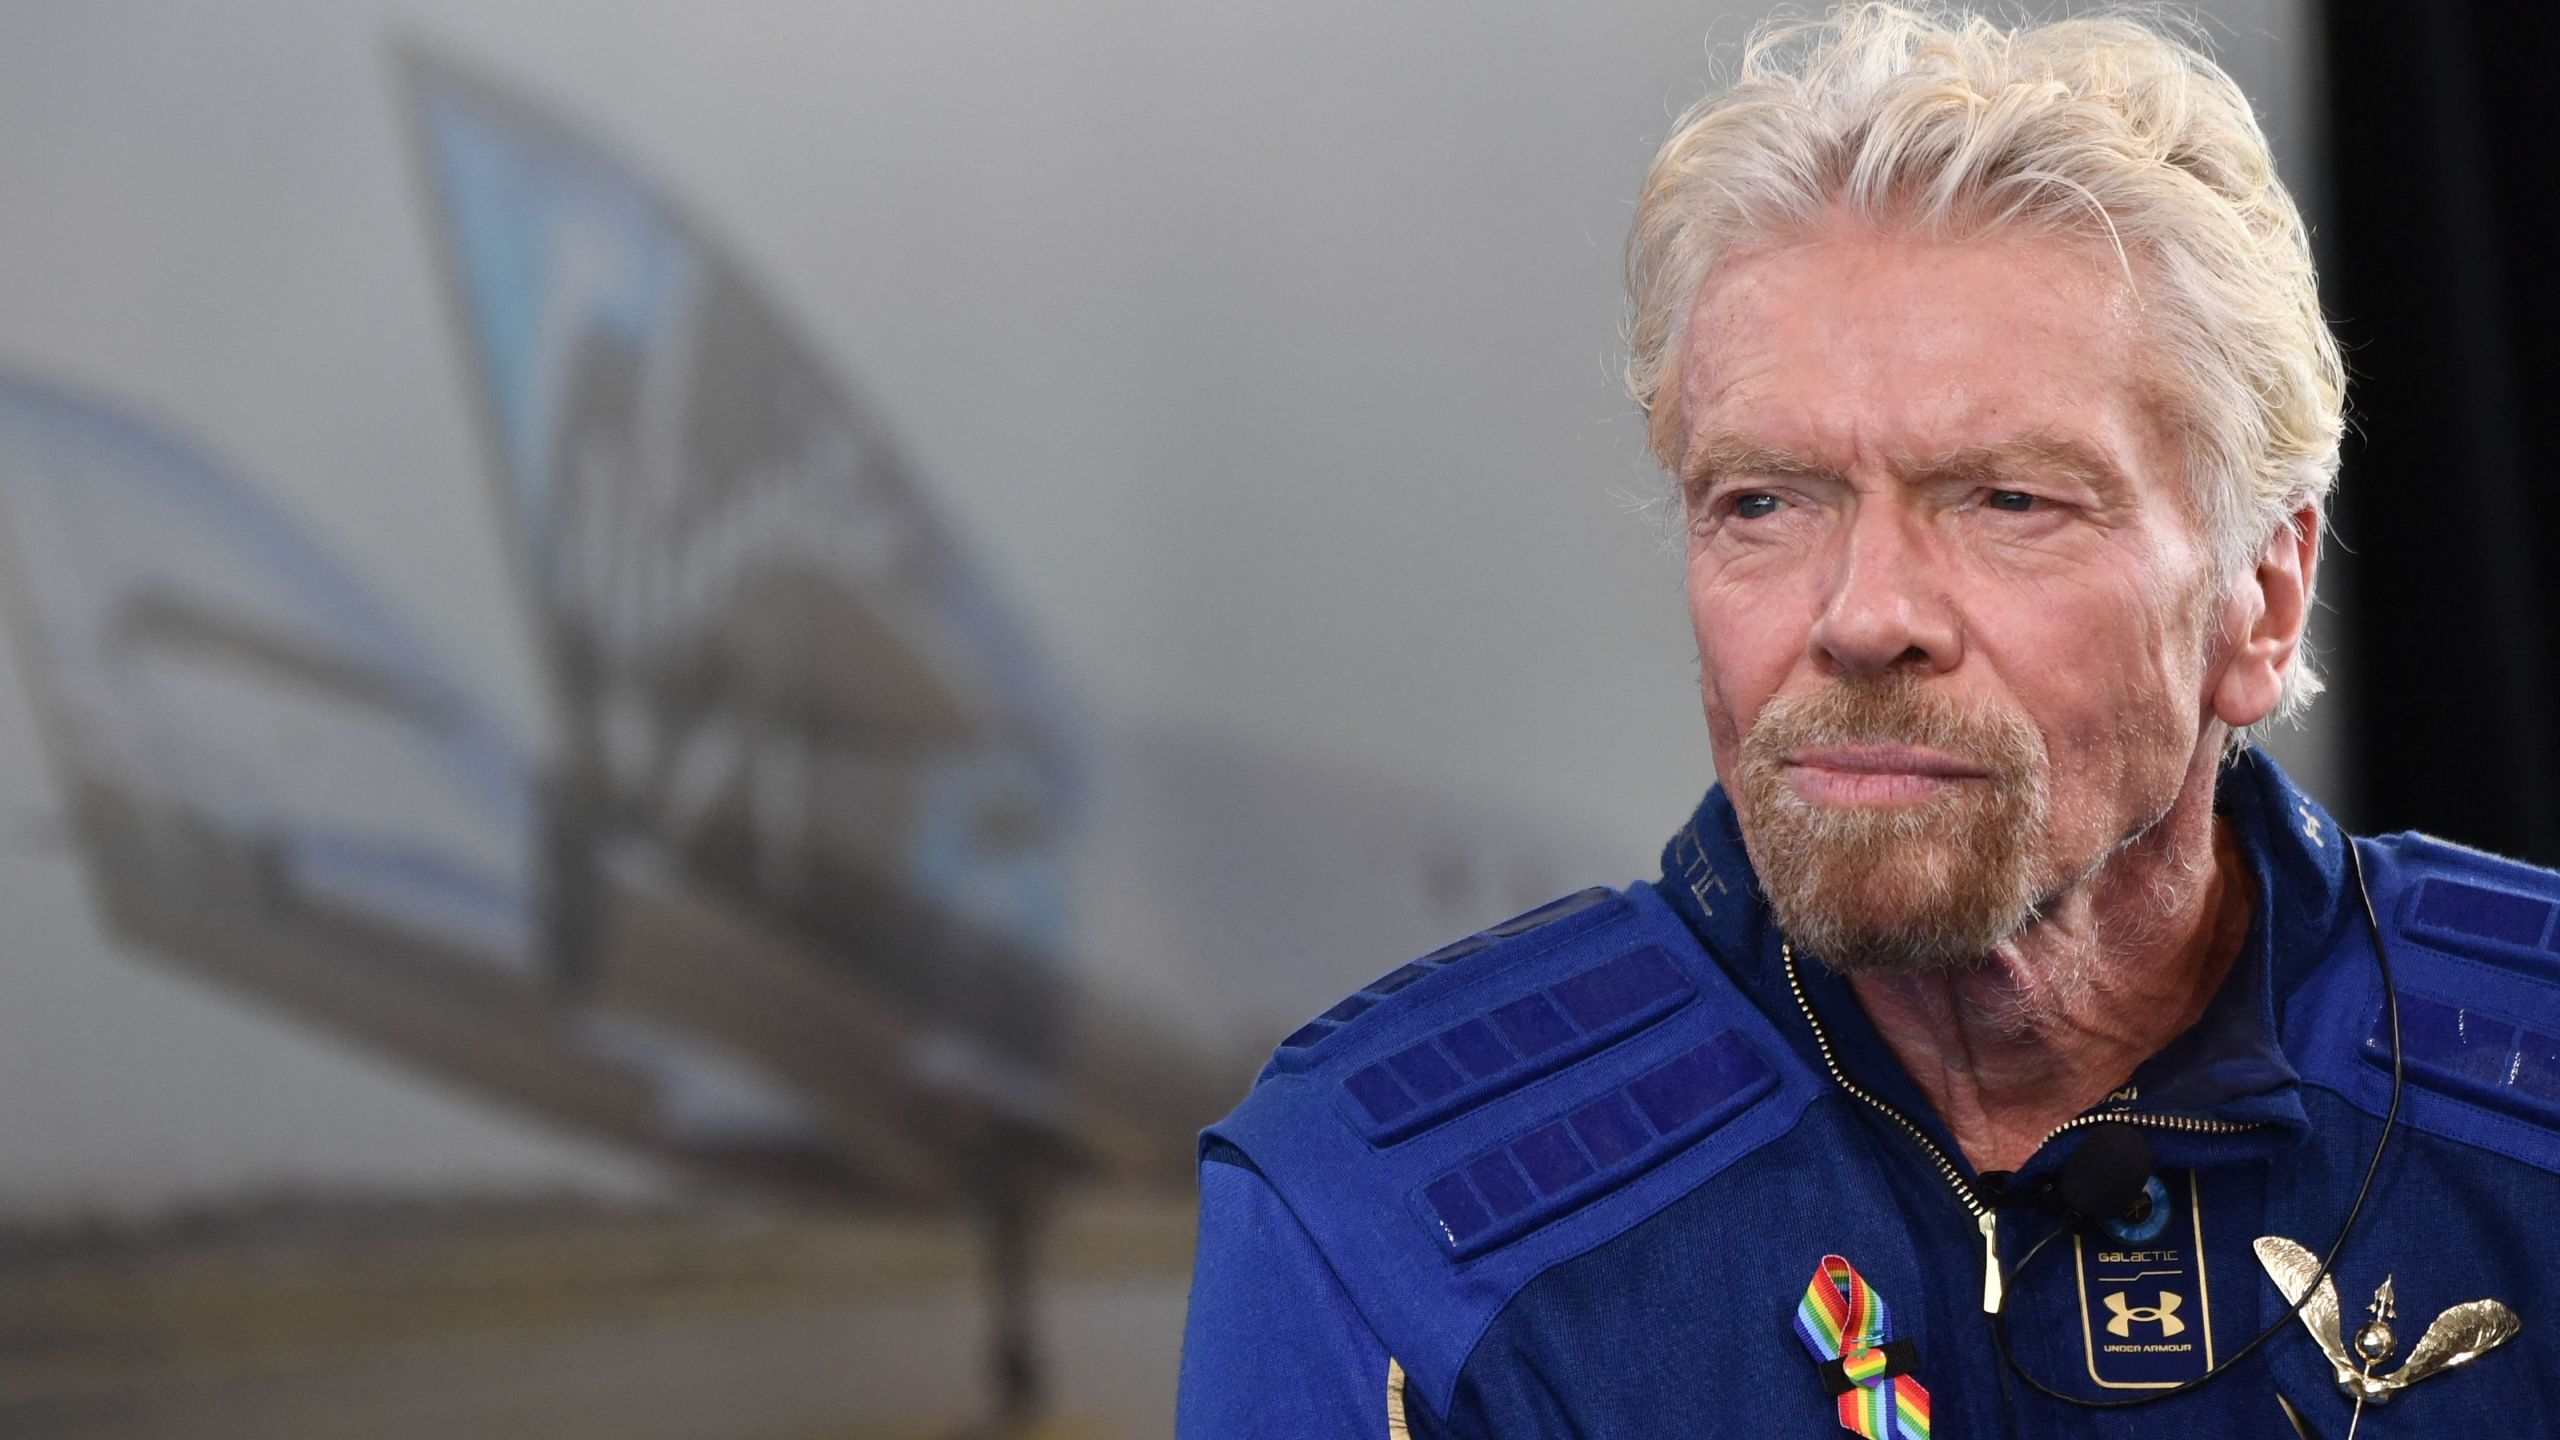 """Richard Branson speaks after he flew into space aboard a Virgin Galactic vessel, a voyage he described as the """"experience of a lifetime"""" near Truth and Consequences, New Mexico on July 11, 2021.(PATRICK T. FALLON/AFP via Getty Images)"""